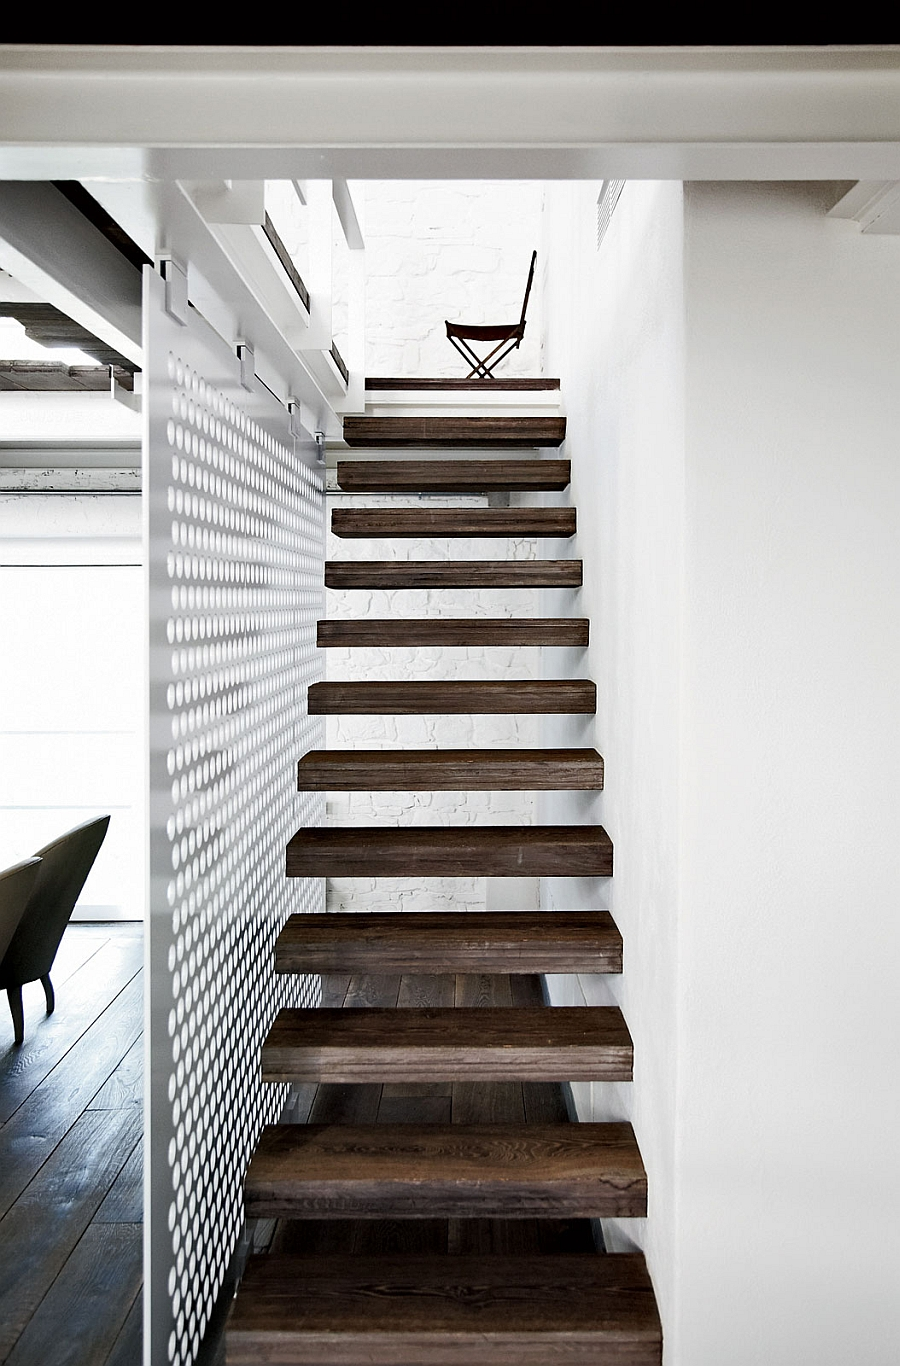 Floating wooden staircase standsout visually thanks to the white backdrop